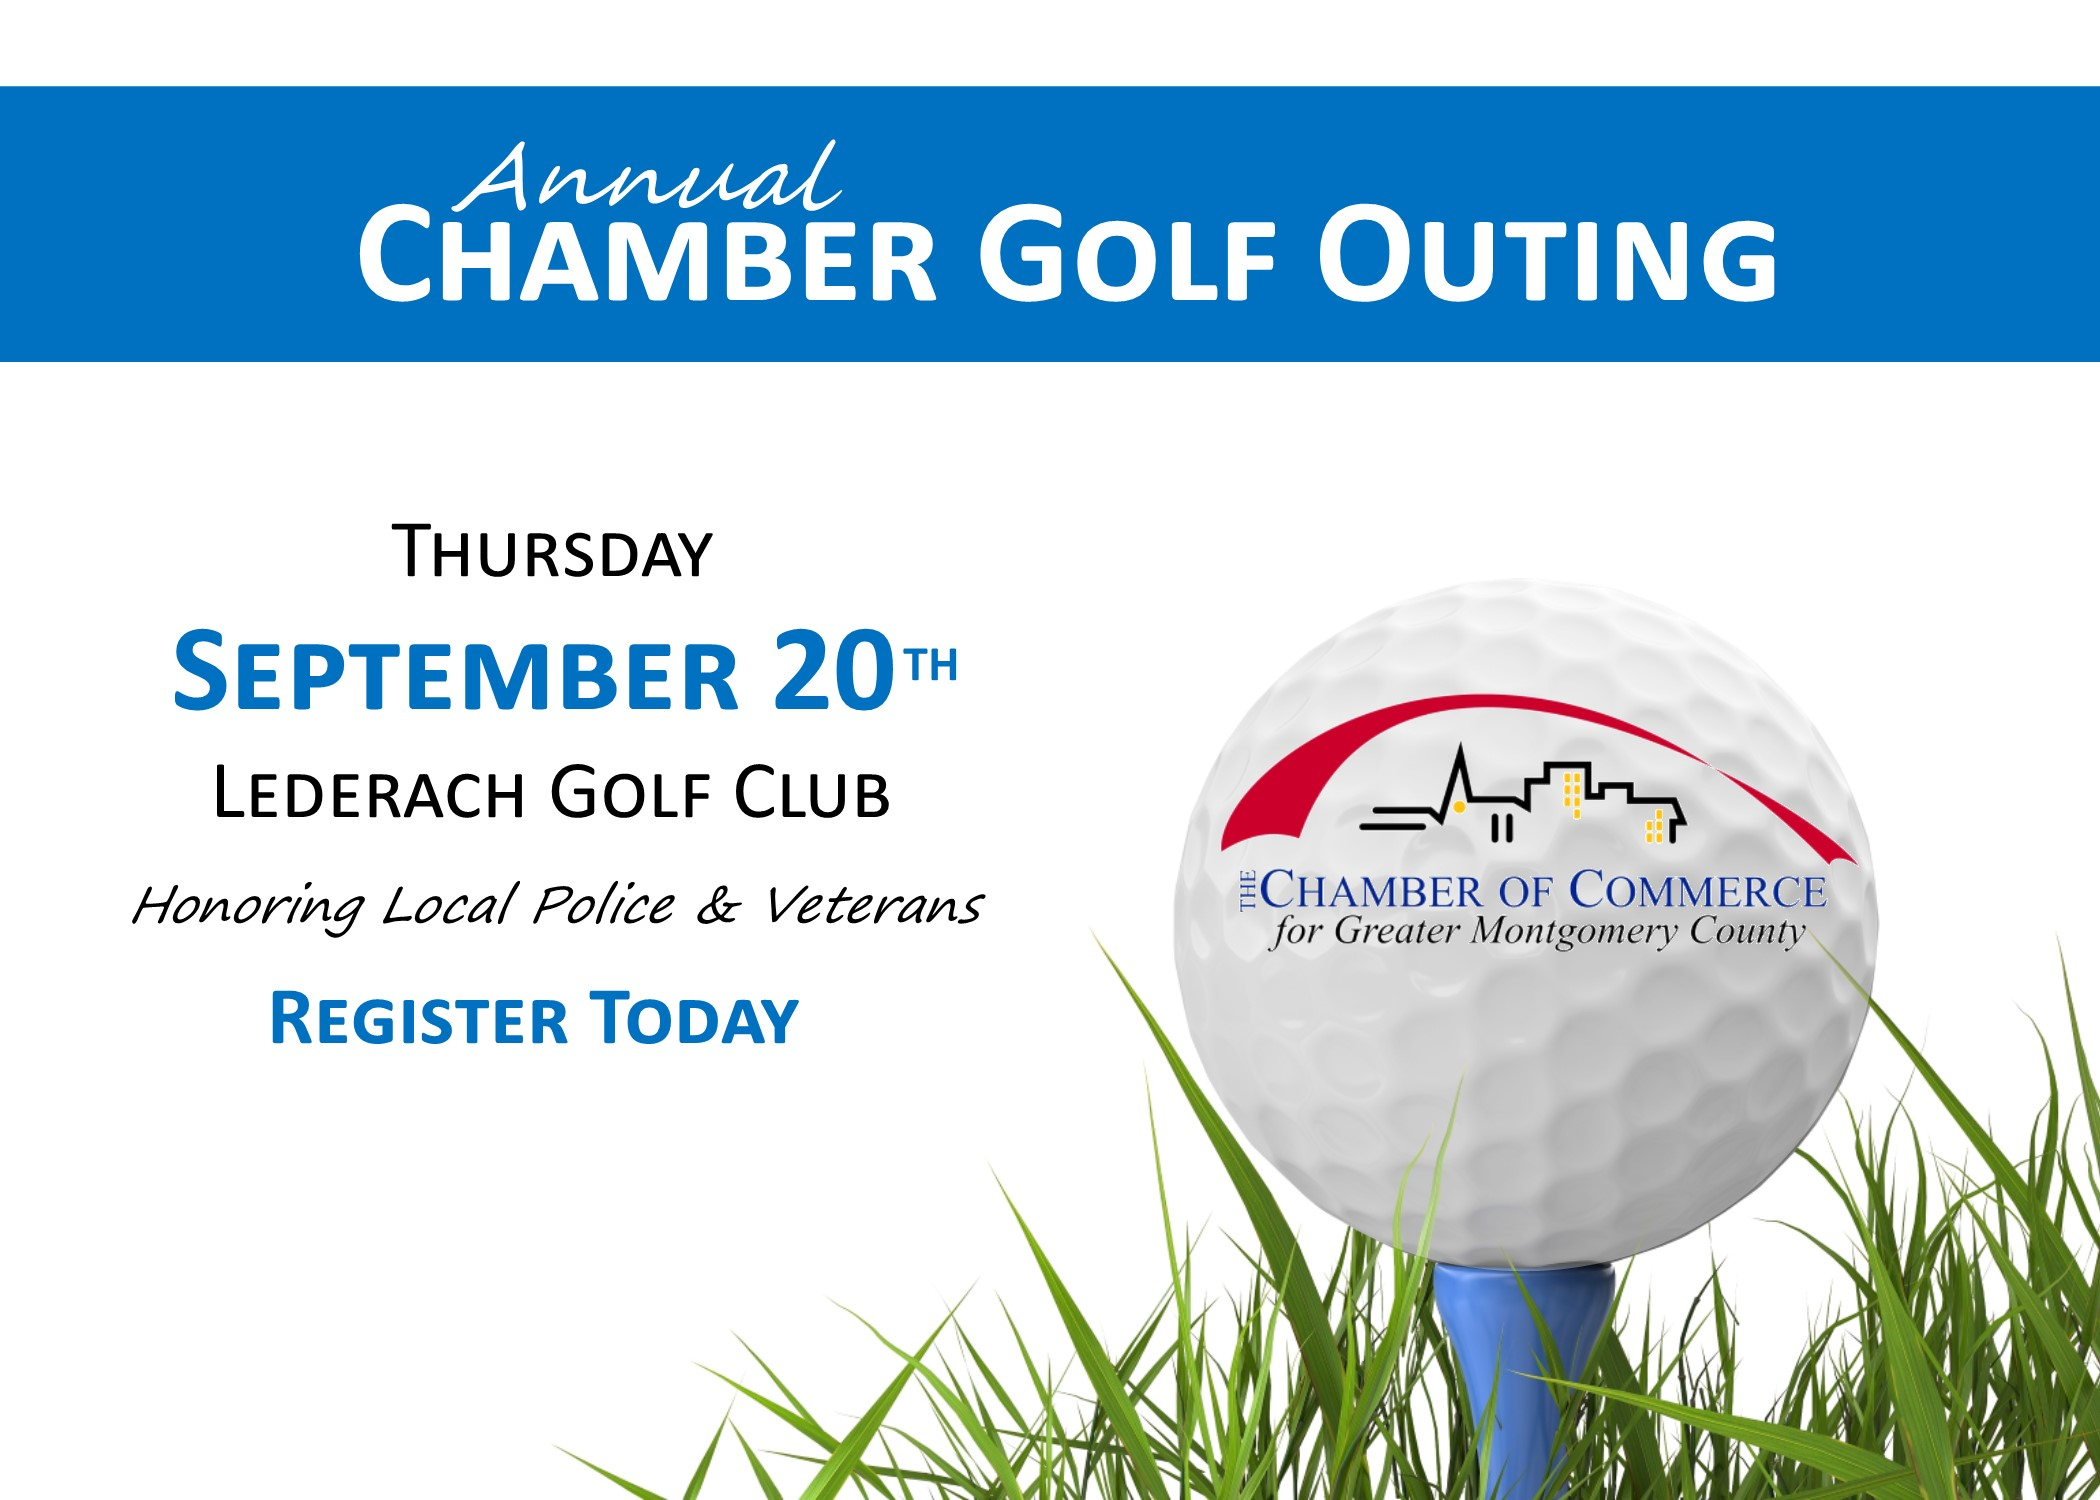 Chamber Golf Outing 2018